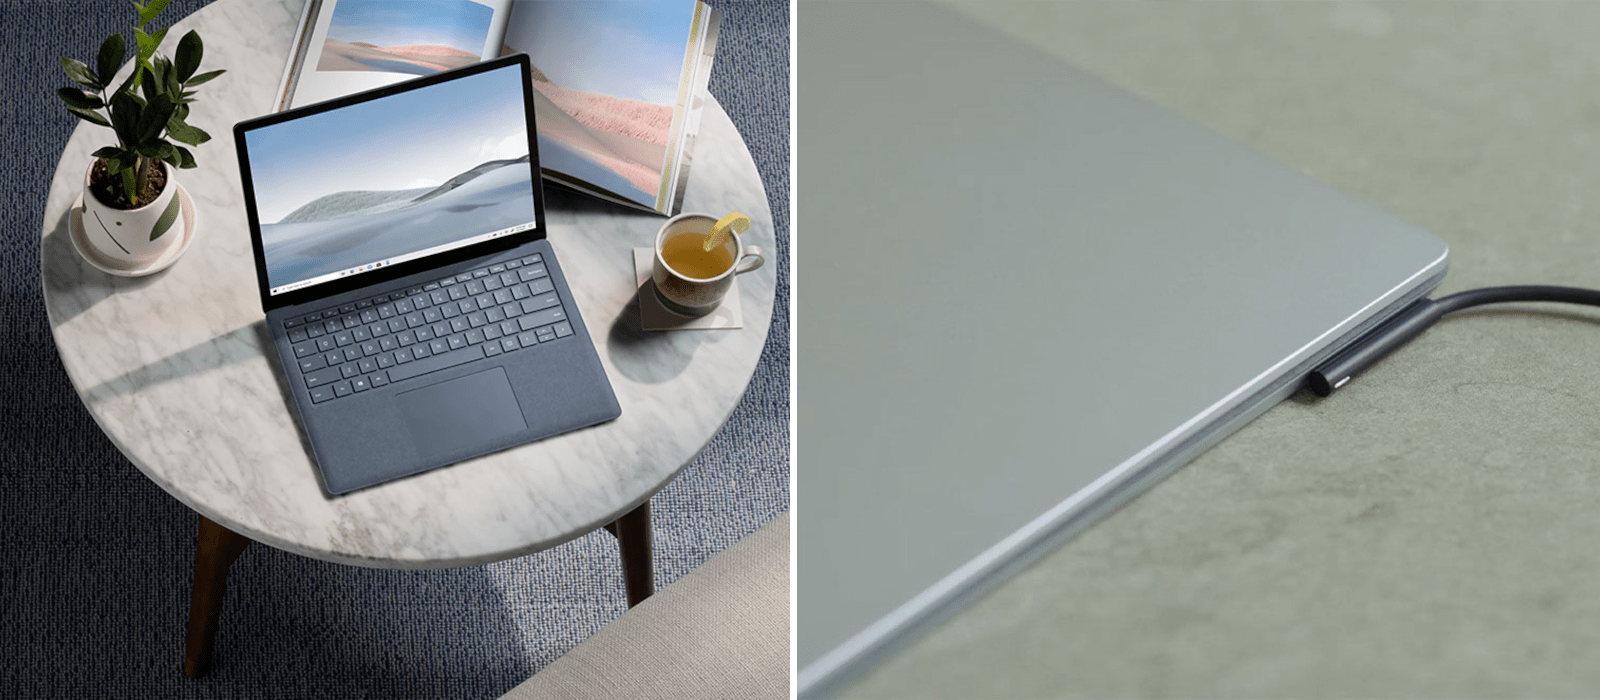 The picture on the left hand side shows a Surface Laptop 4, which is placed between a plant, a mug and a book on a table. The picture on the right hand side shows a detailed view on the plugged charging cable.